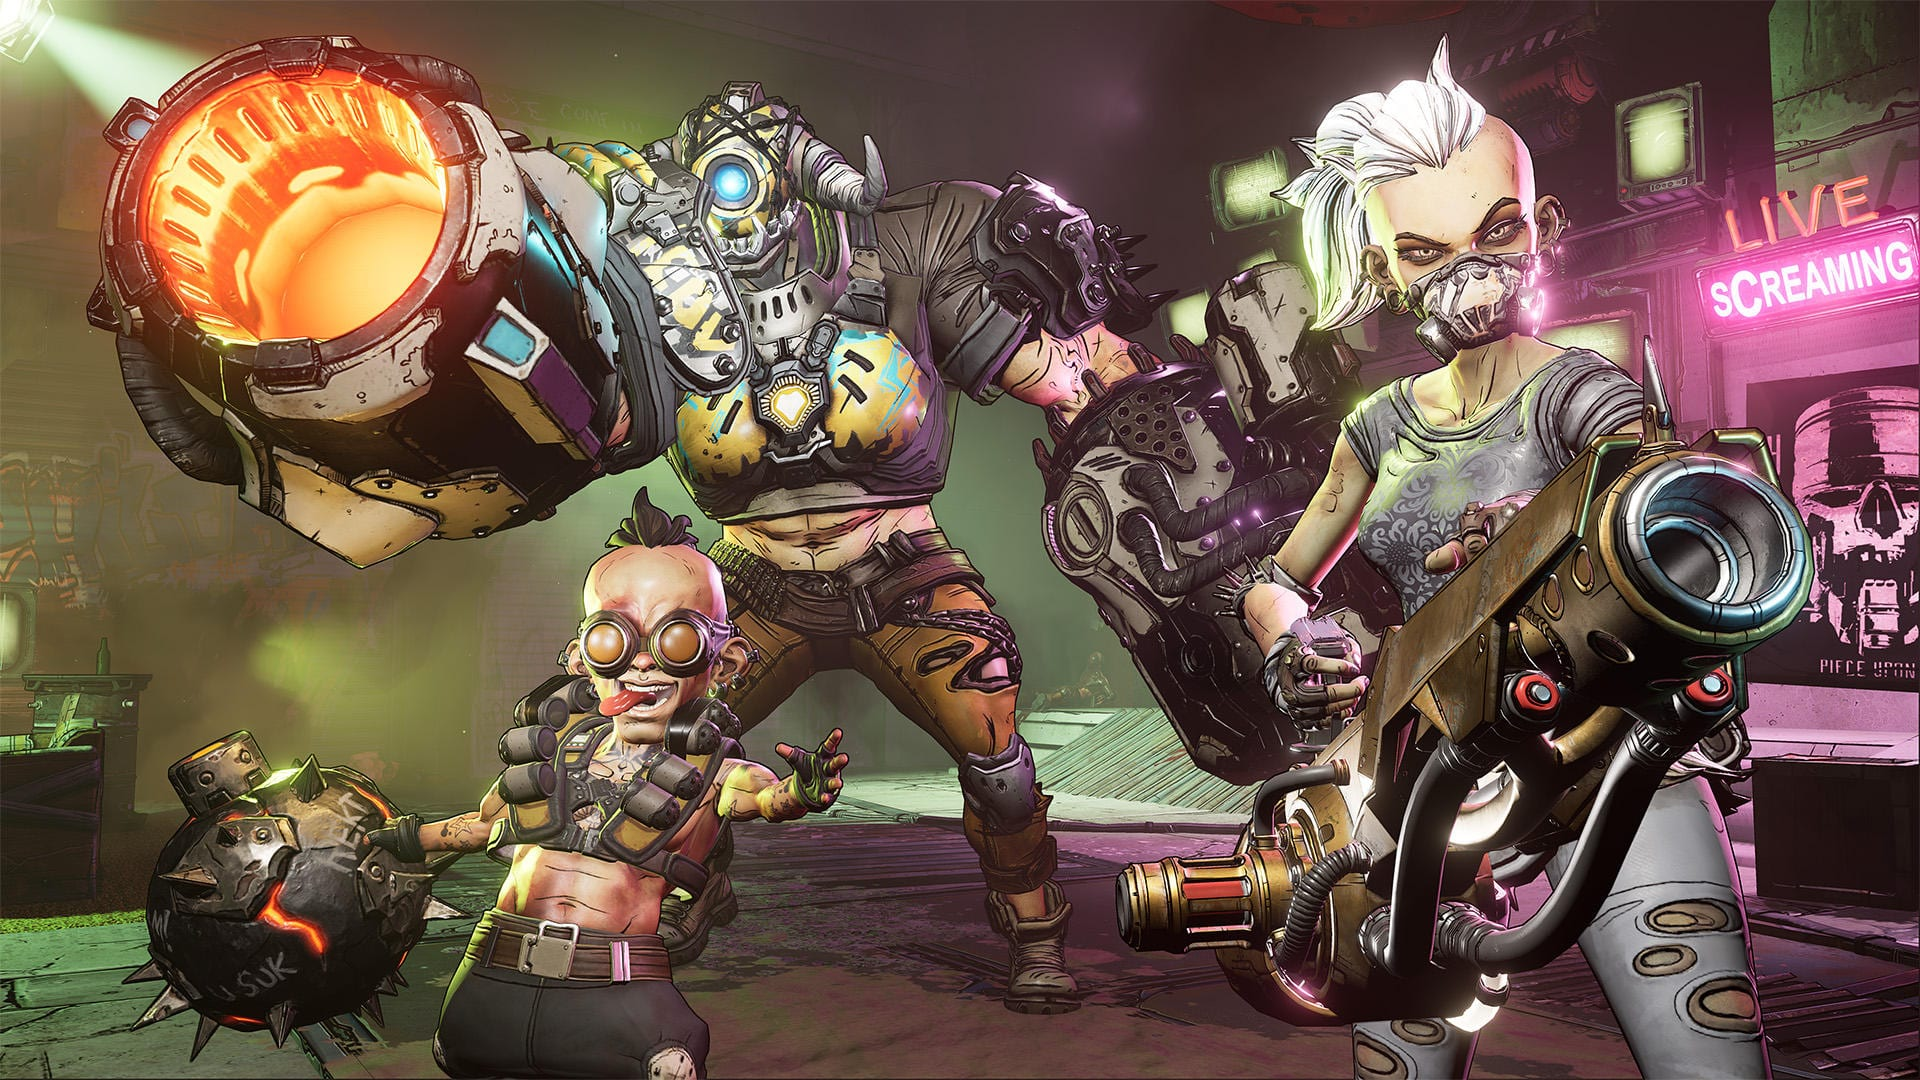 borderlands 3, cross platform play